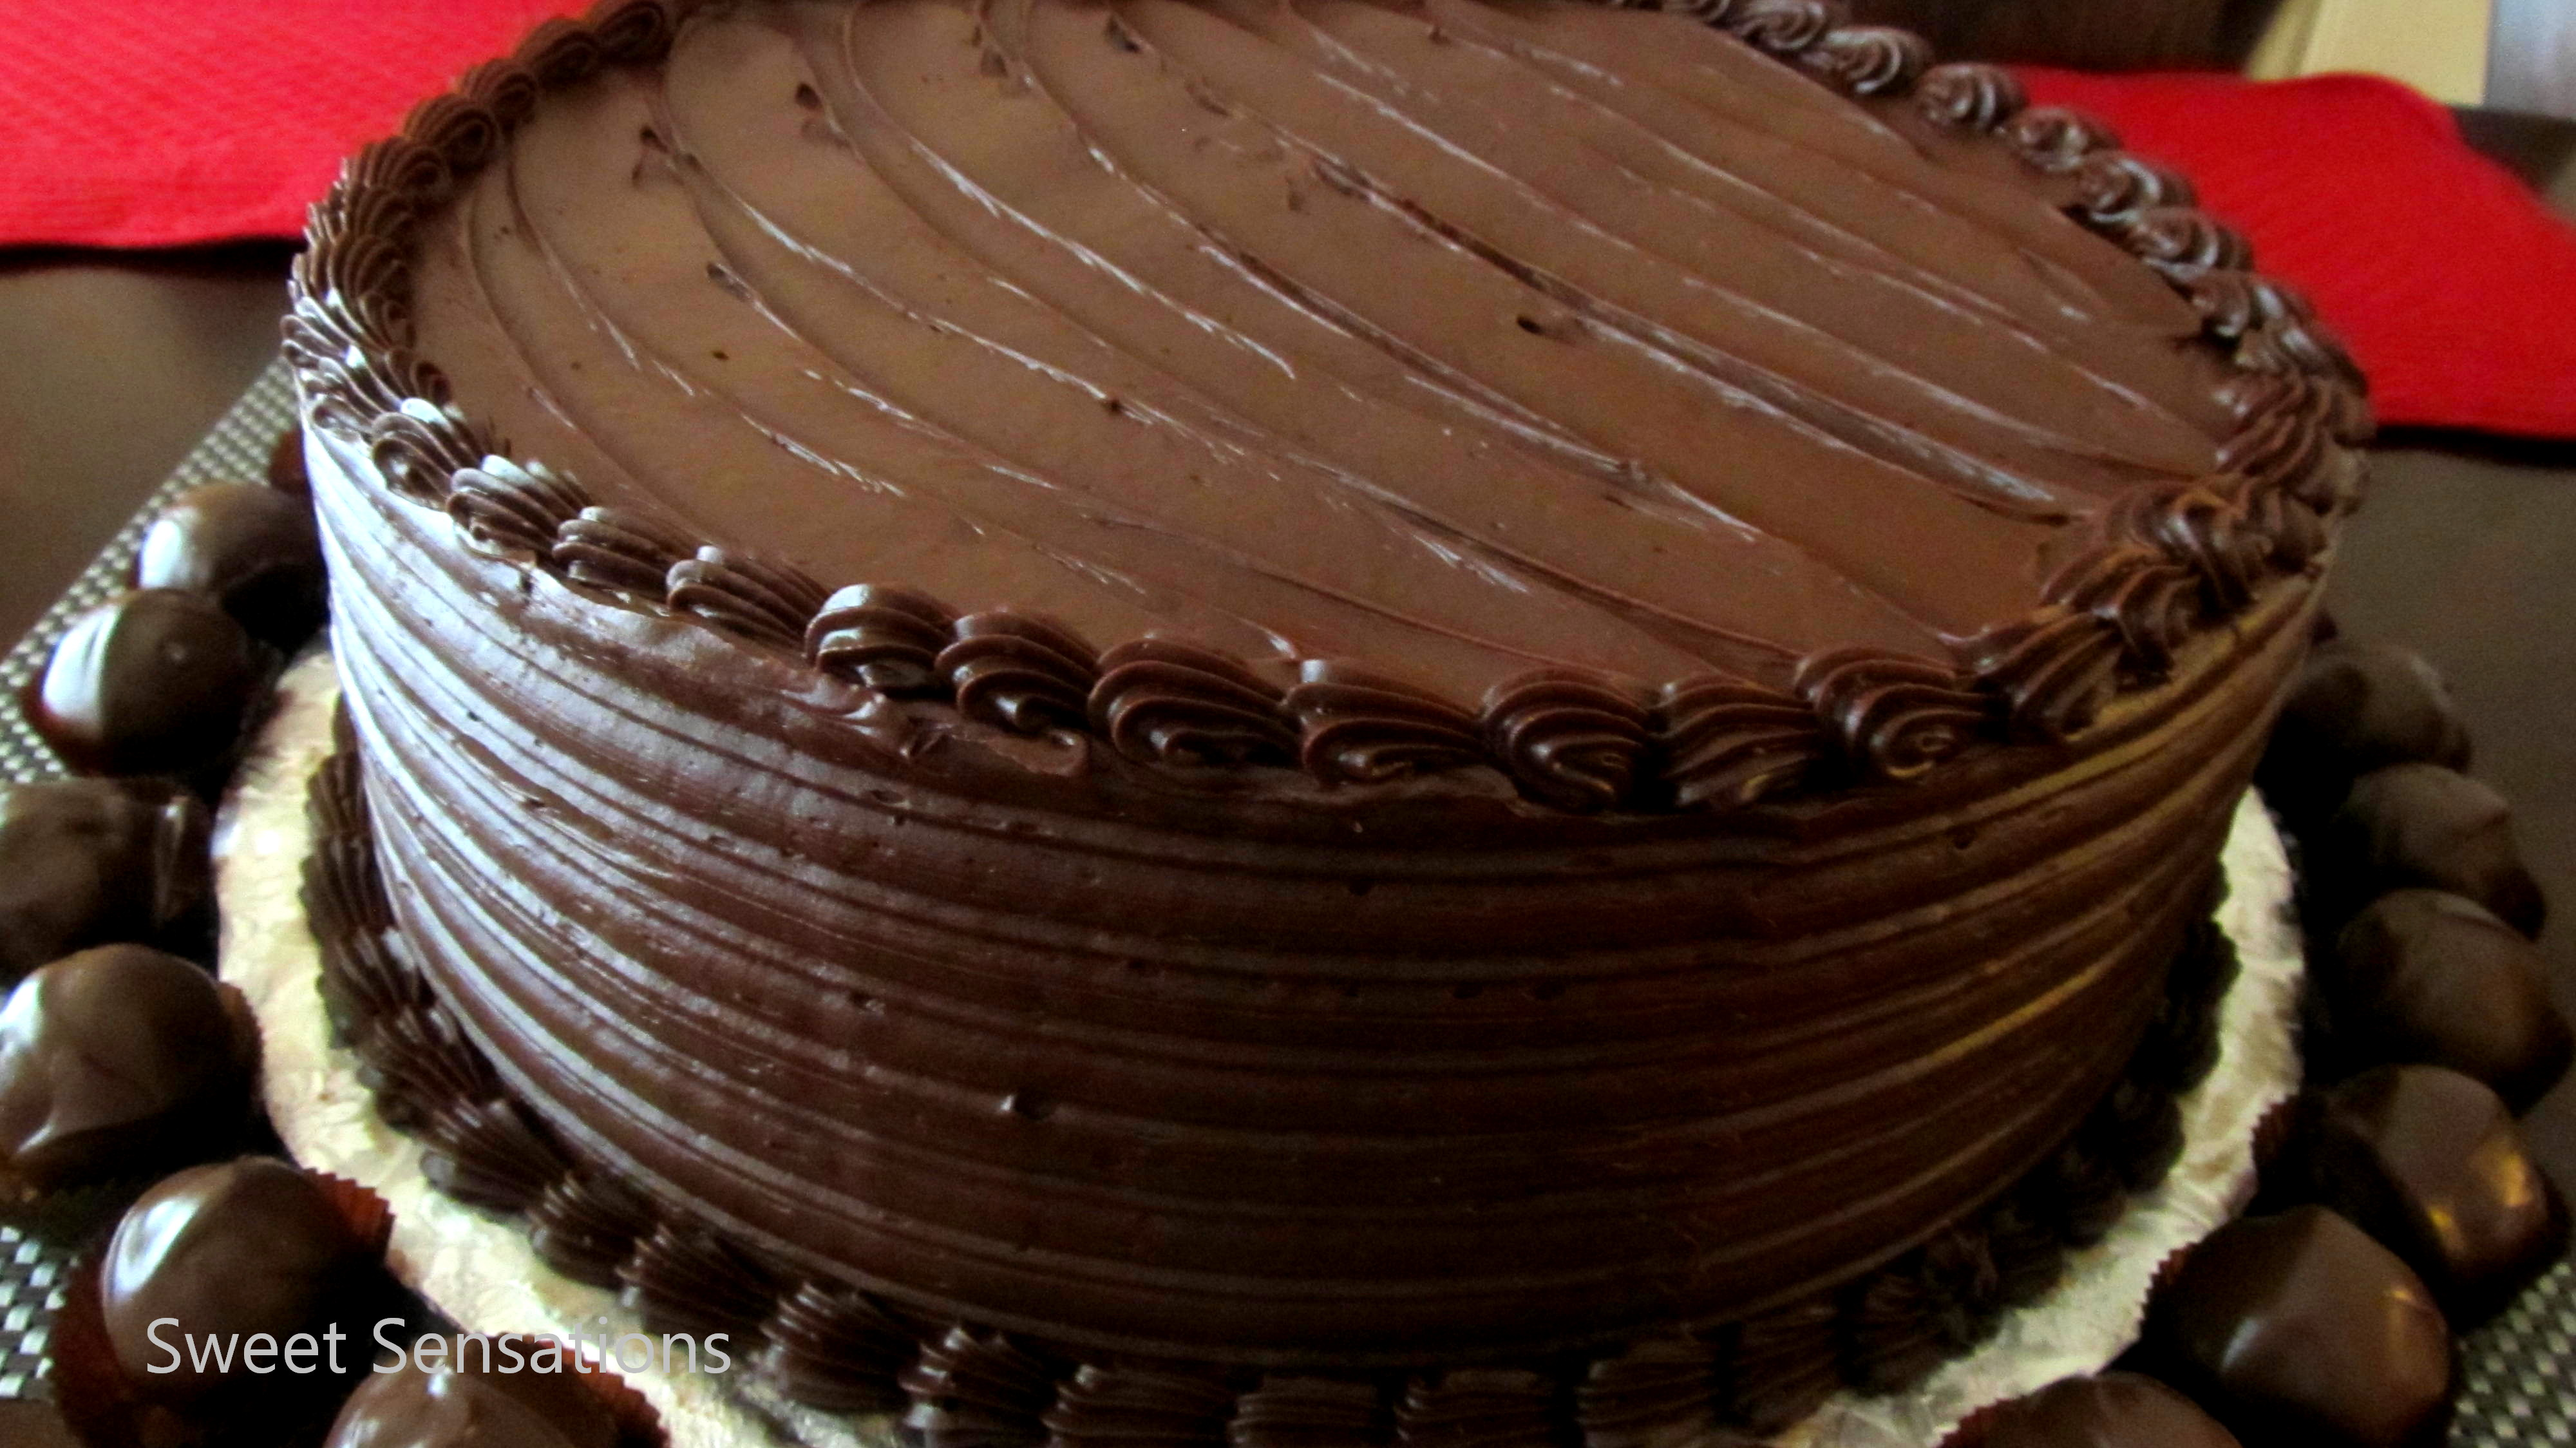 Images Of Big Chocolate Cake : Big Chocolate Cake www.pixshark.com - Images Galleries ...